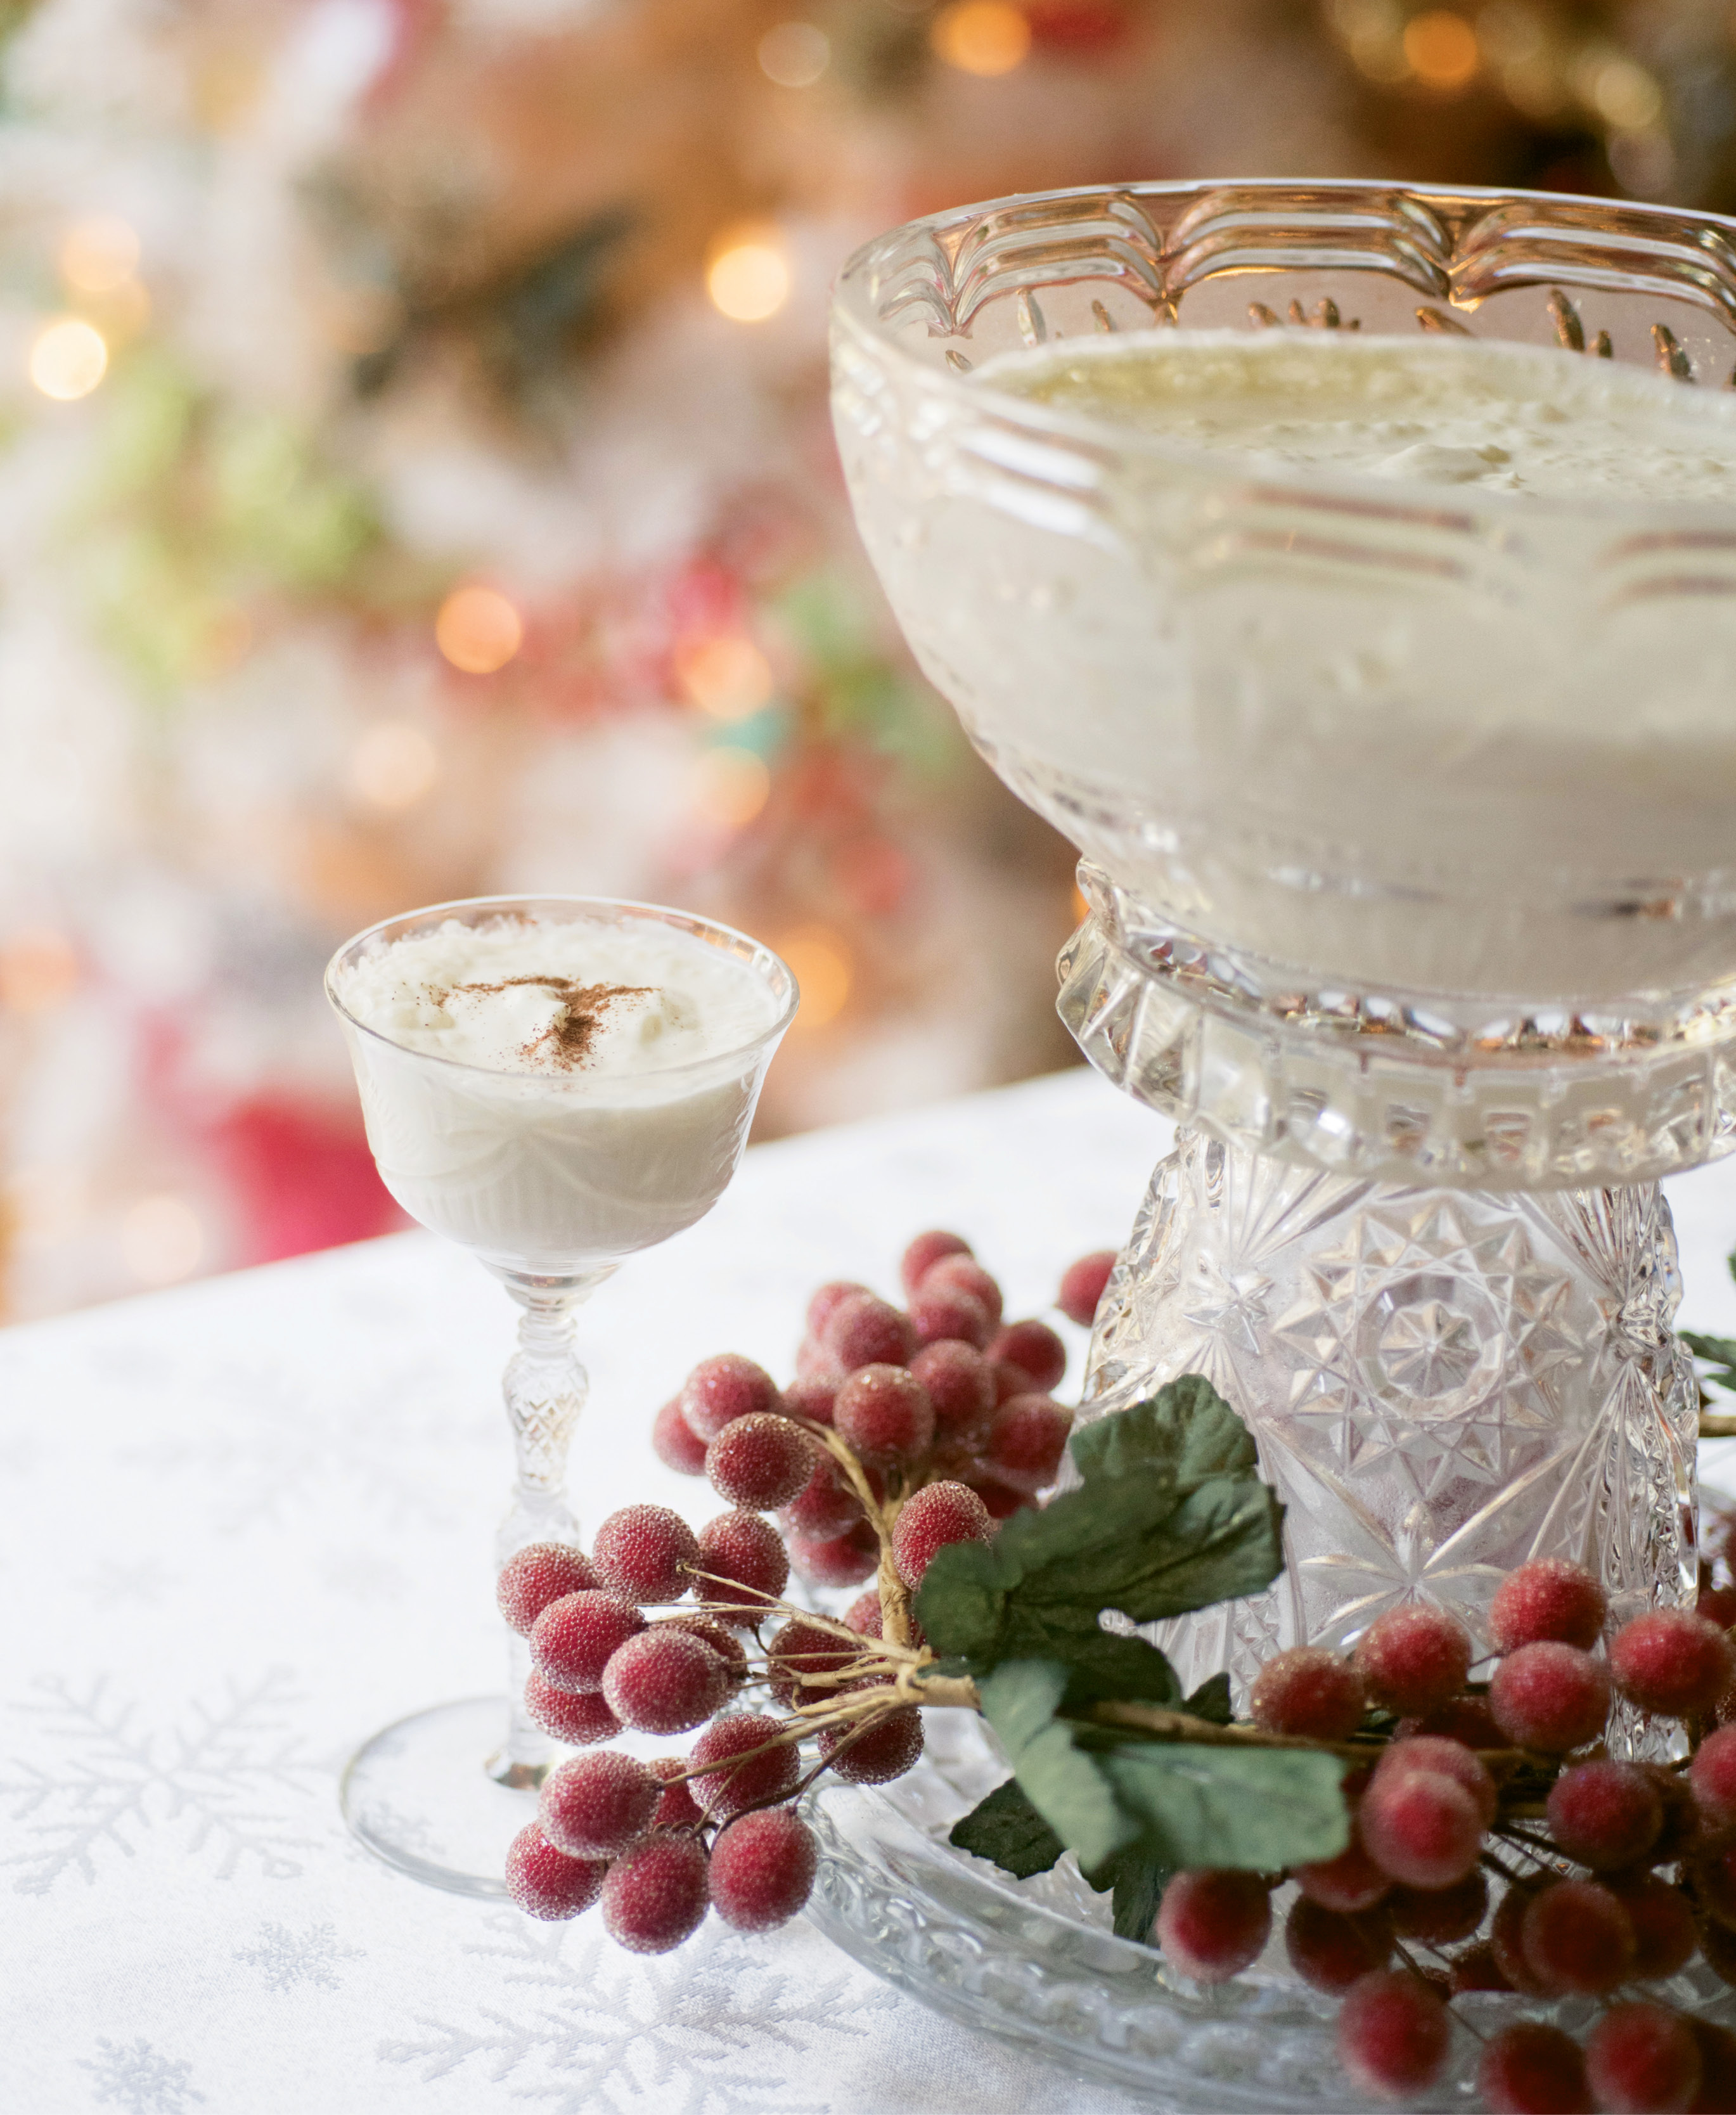 Traditionally, syllabub is made in a churn, but an emulsion blender makes a fine substitute.